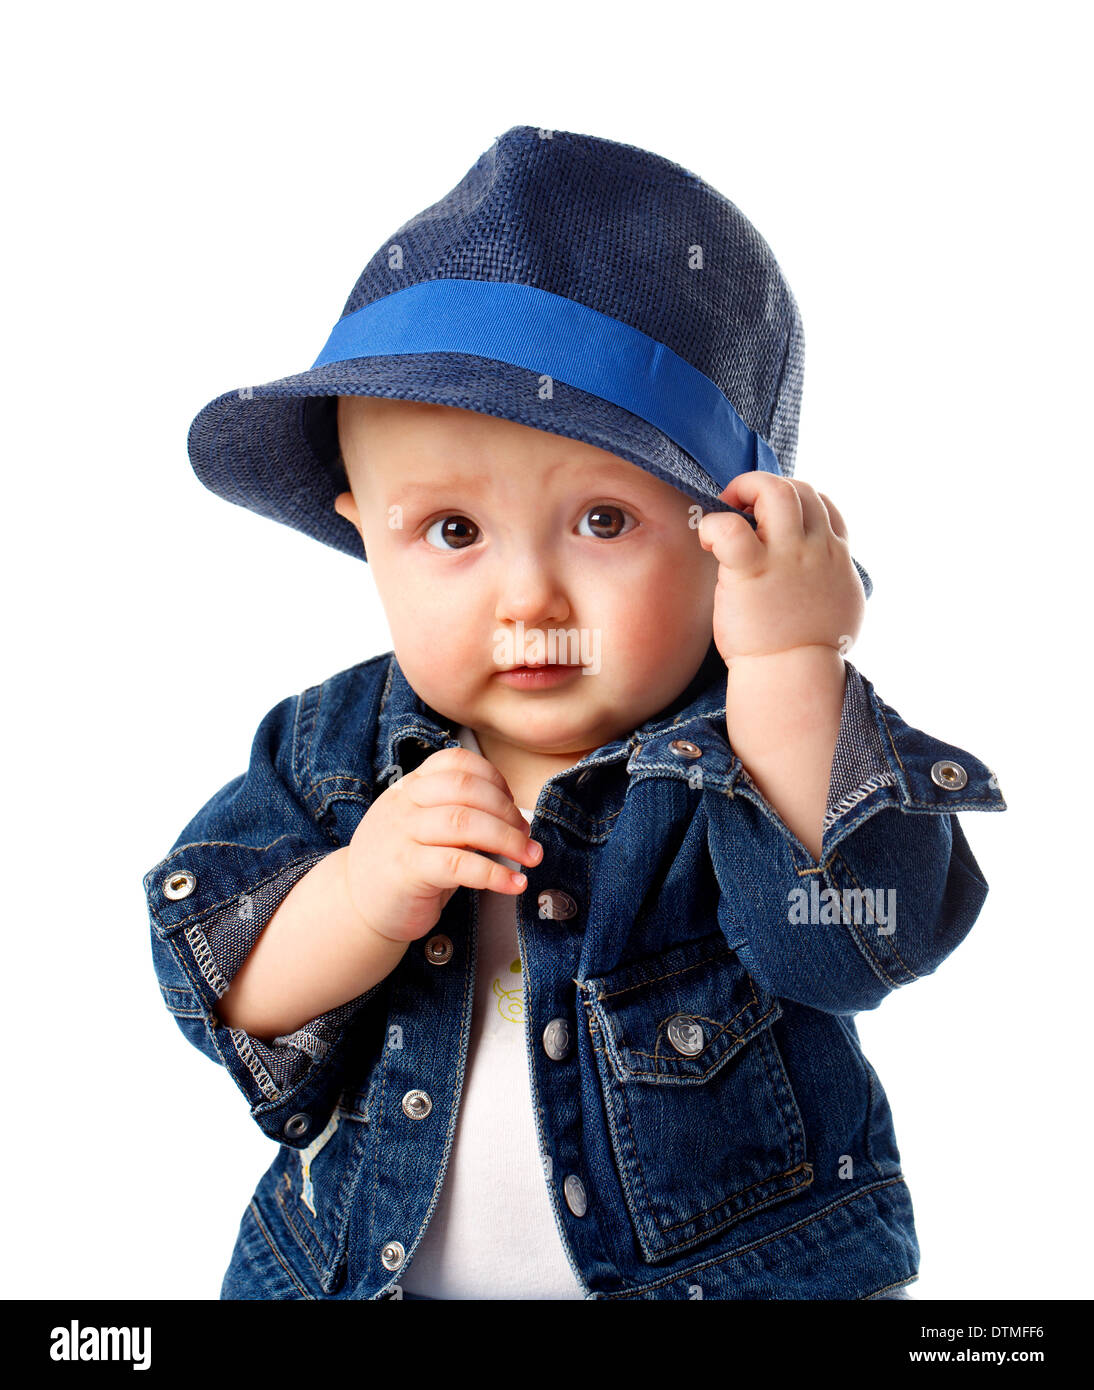 Cute Baby Boy Holding Hat Stock Photo Alamy